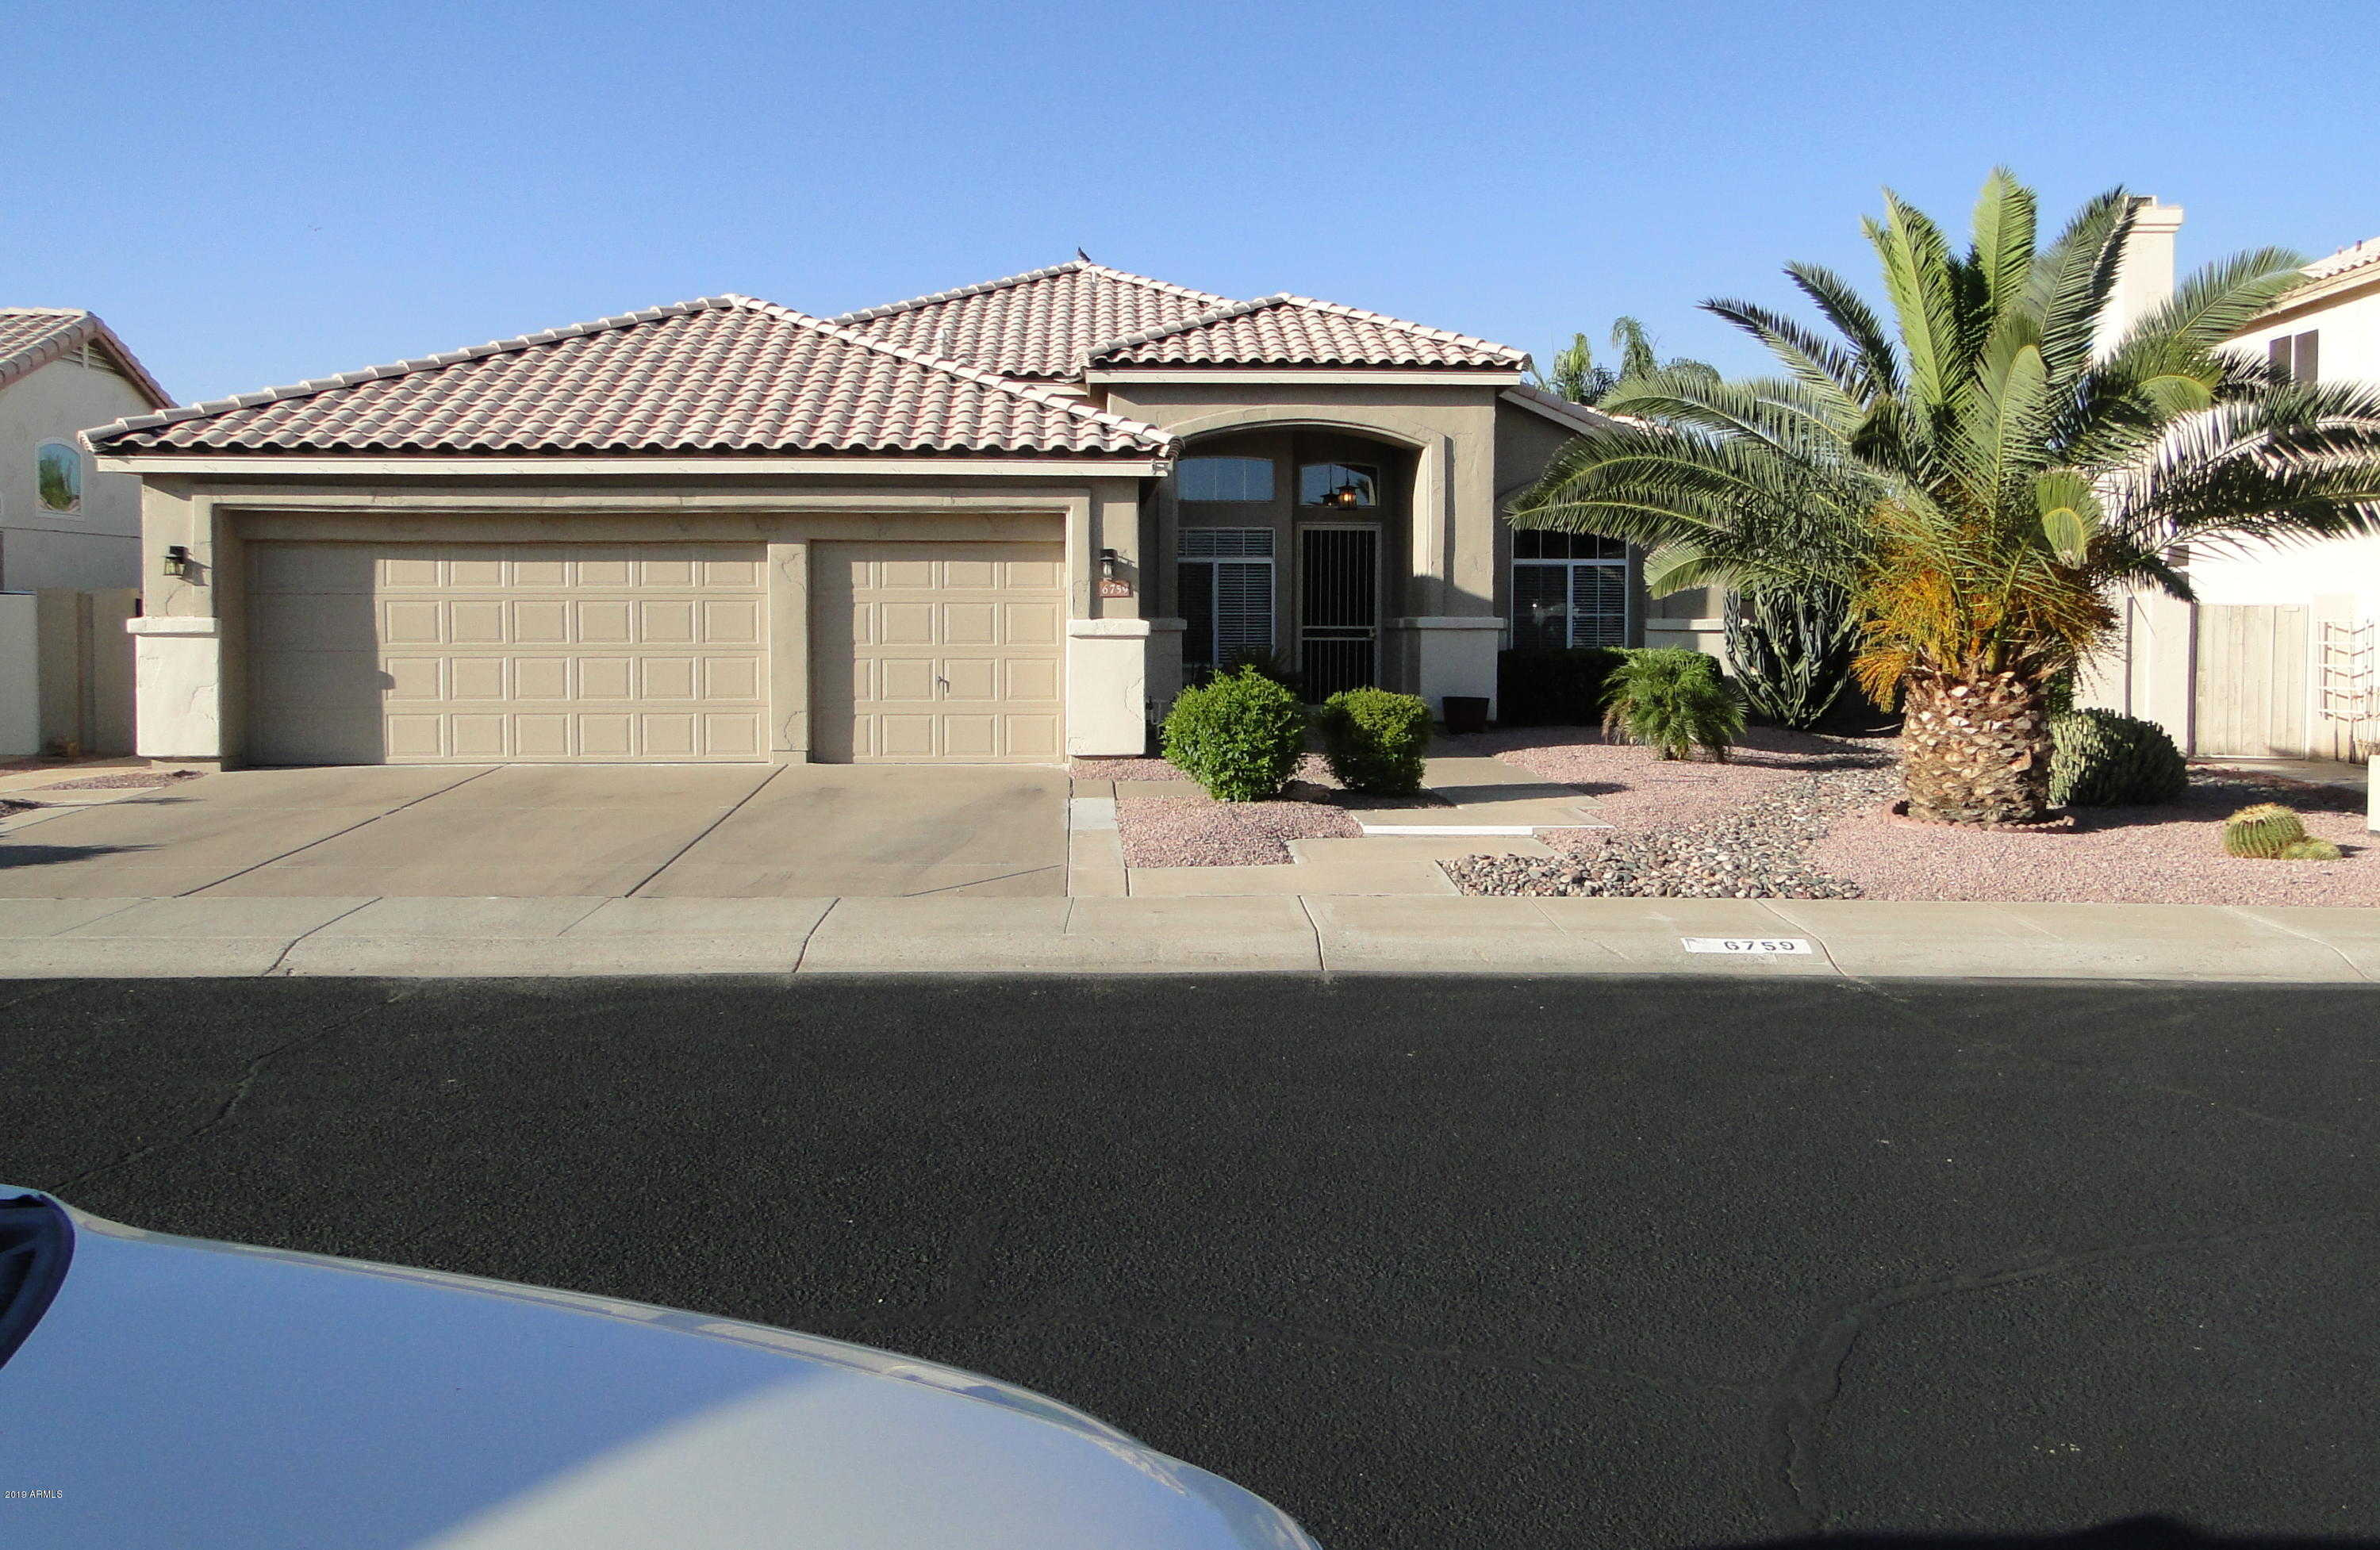 $395,000 - 4Br/2Ba - Home for Sale in Hillcrest Ranch Parcel A Lot 1-133 Tr A-g, Glendale